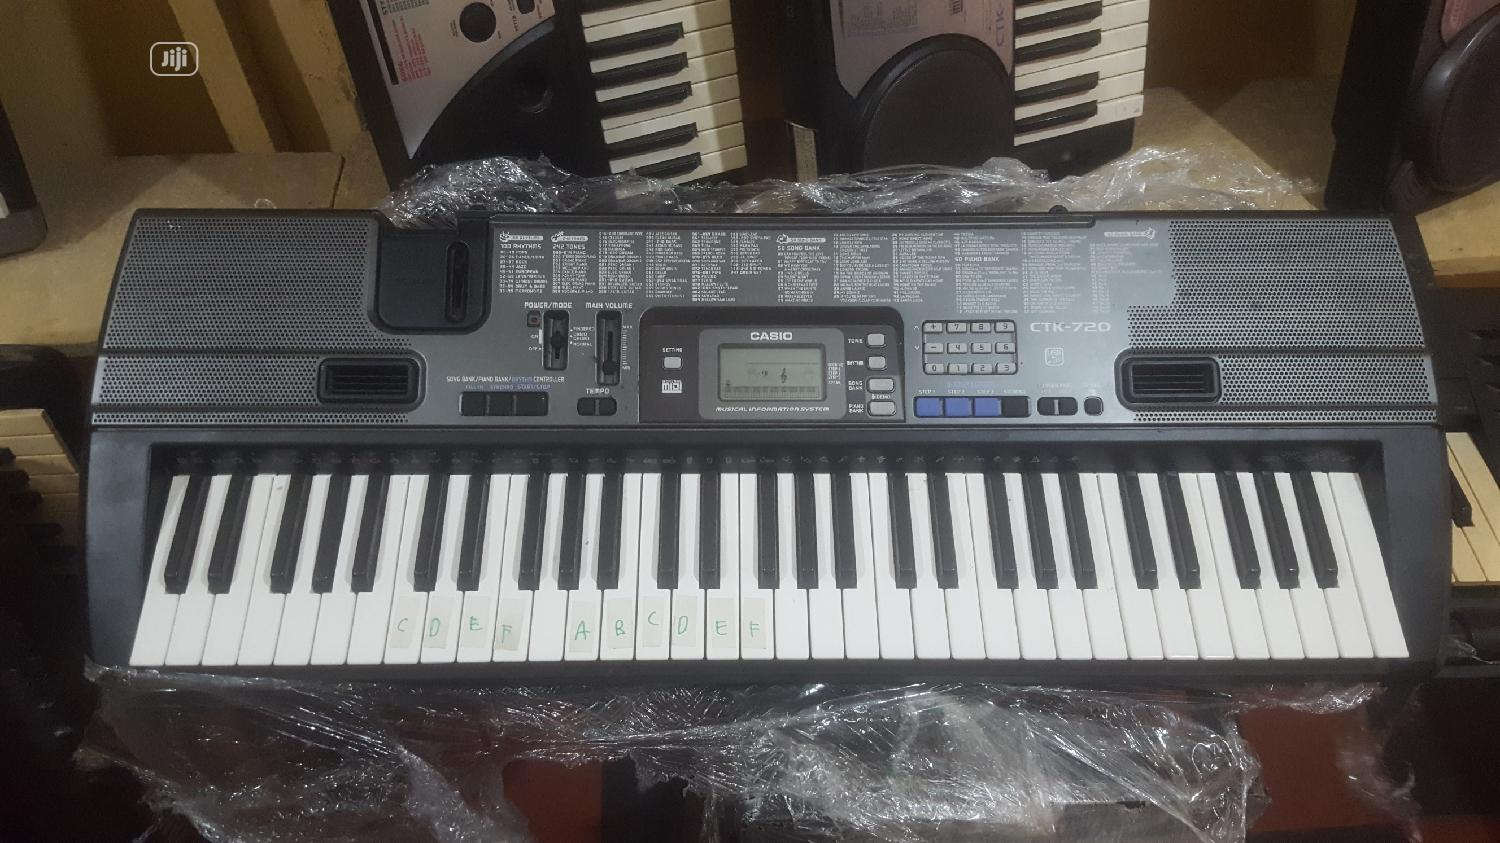 Brand's Used || Casio Ctk720 Practice Keyboard Free Stand Included